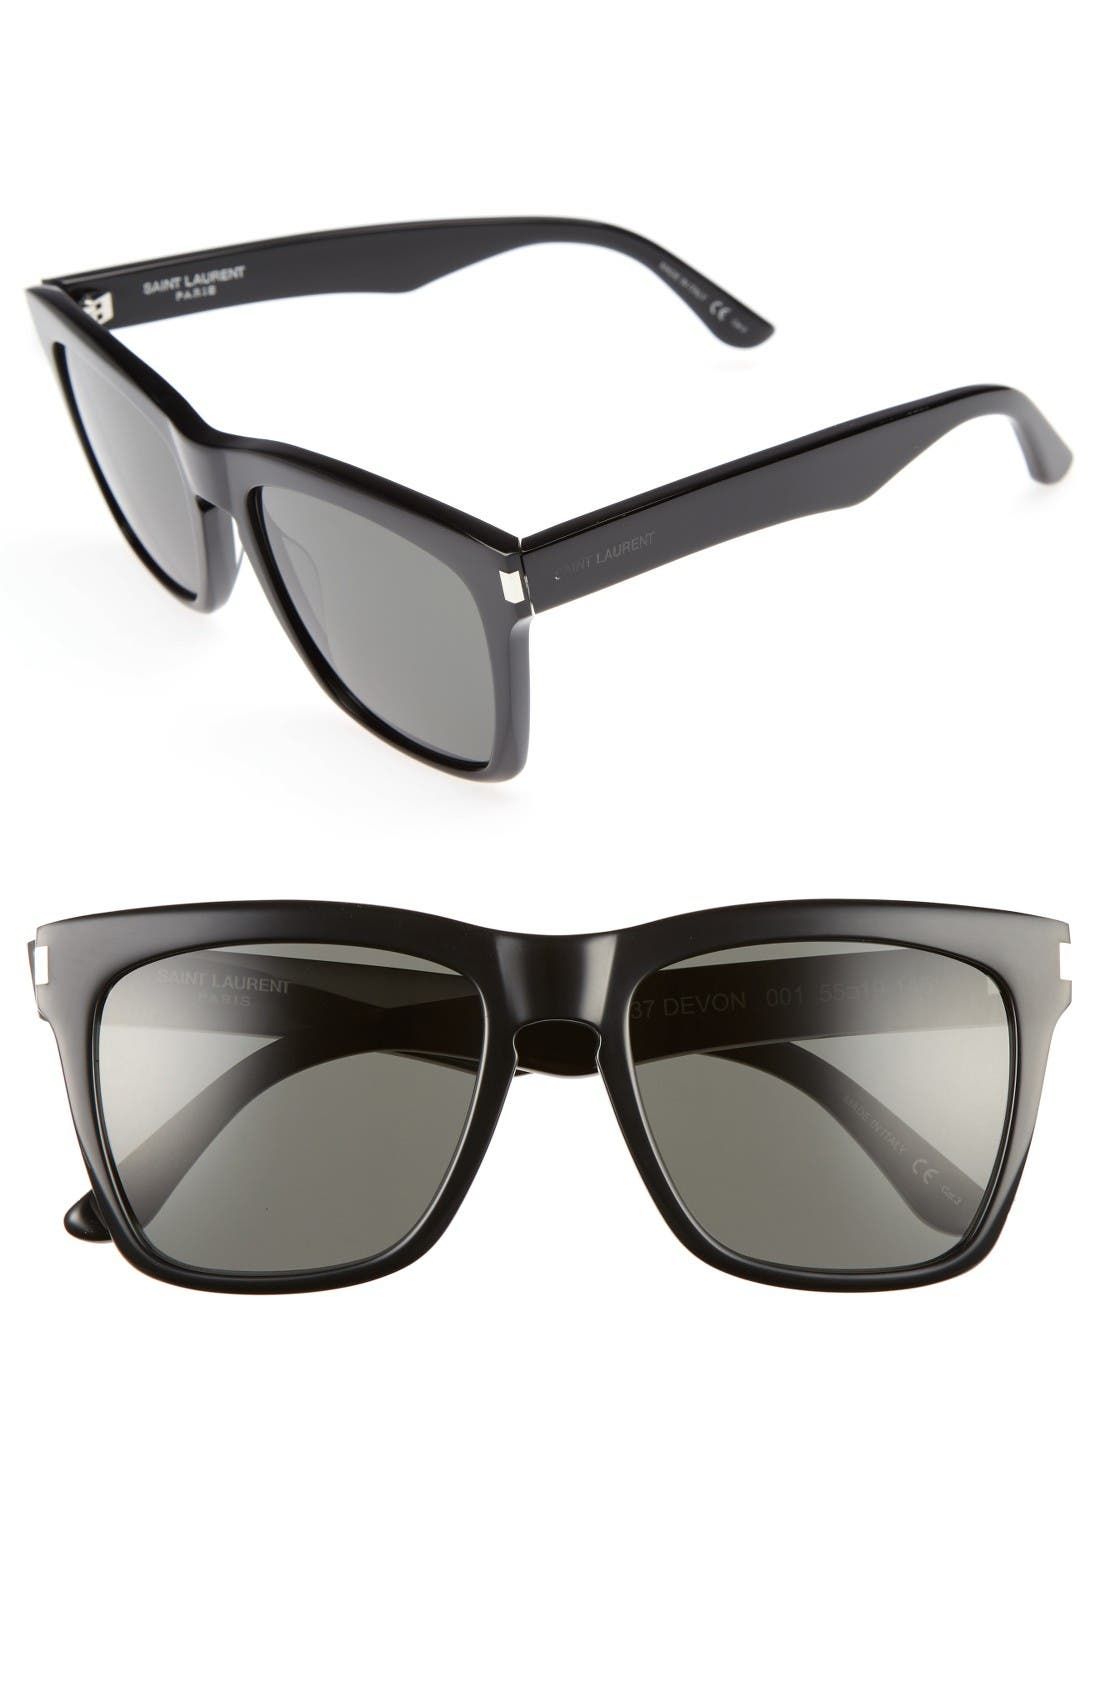 Saint Laurent Devon 55mm Sunglasses